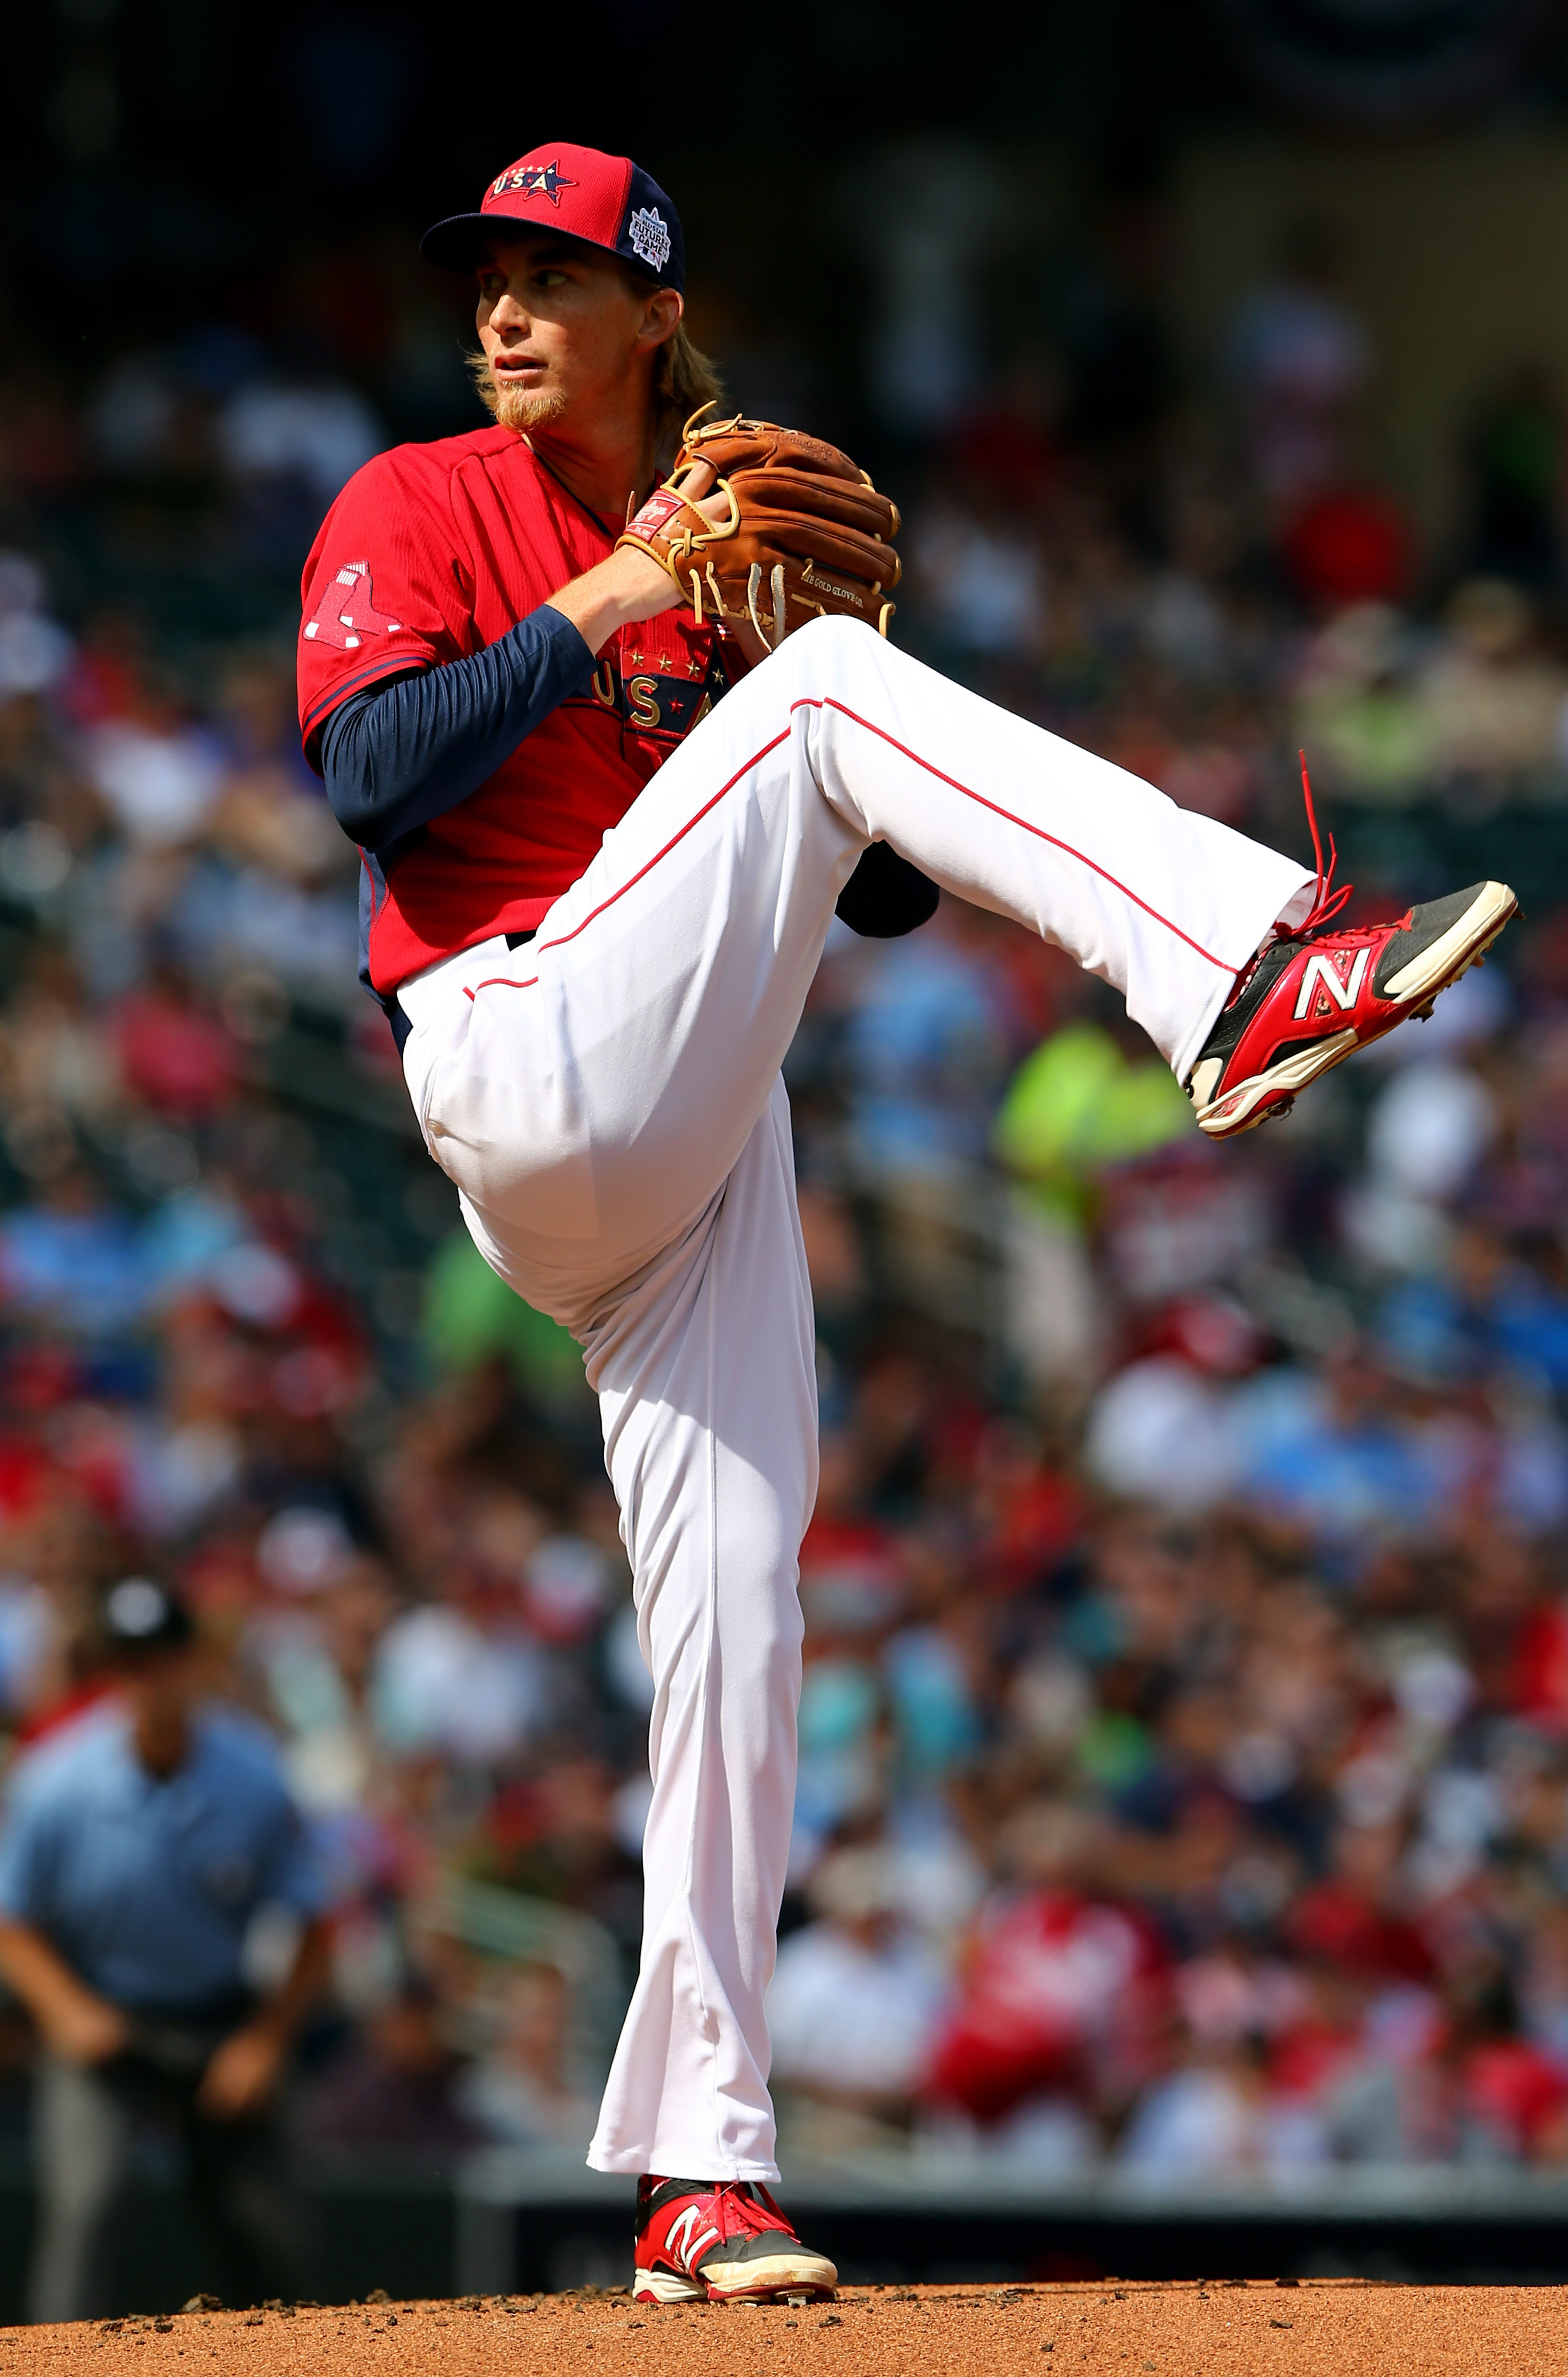 Henry Owens, considered one of the top pitchers in the Red Sox system, will try his luck against the Bisons on Tuesday night.